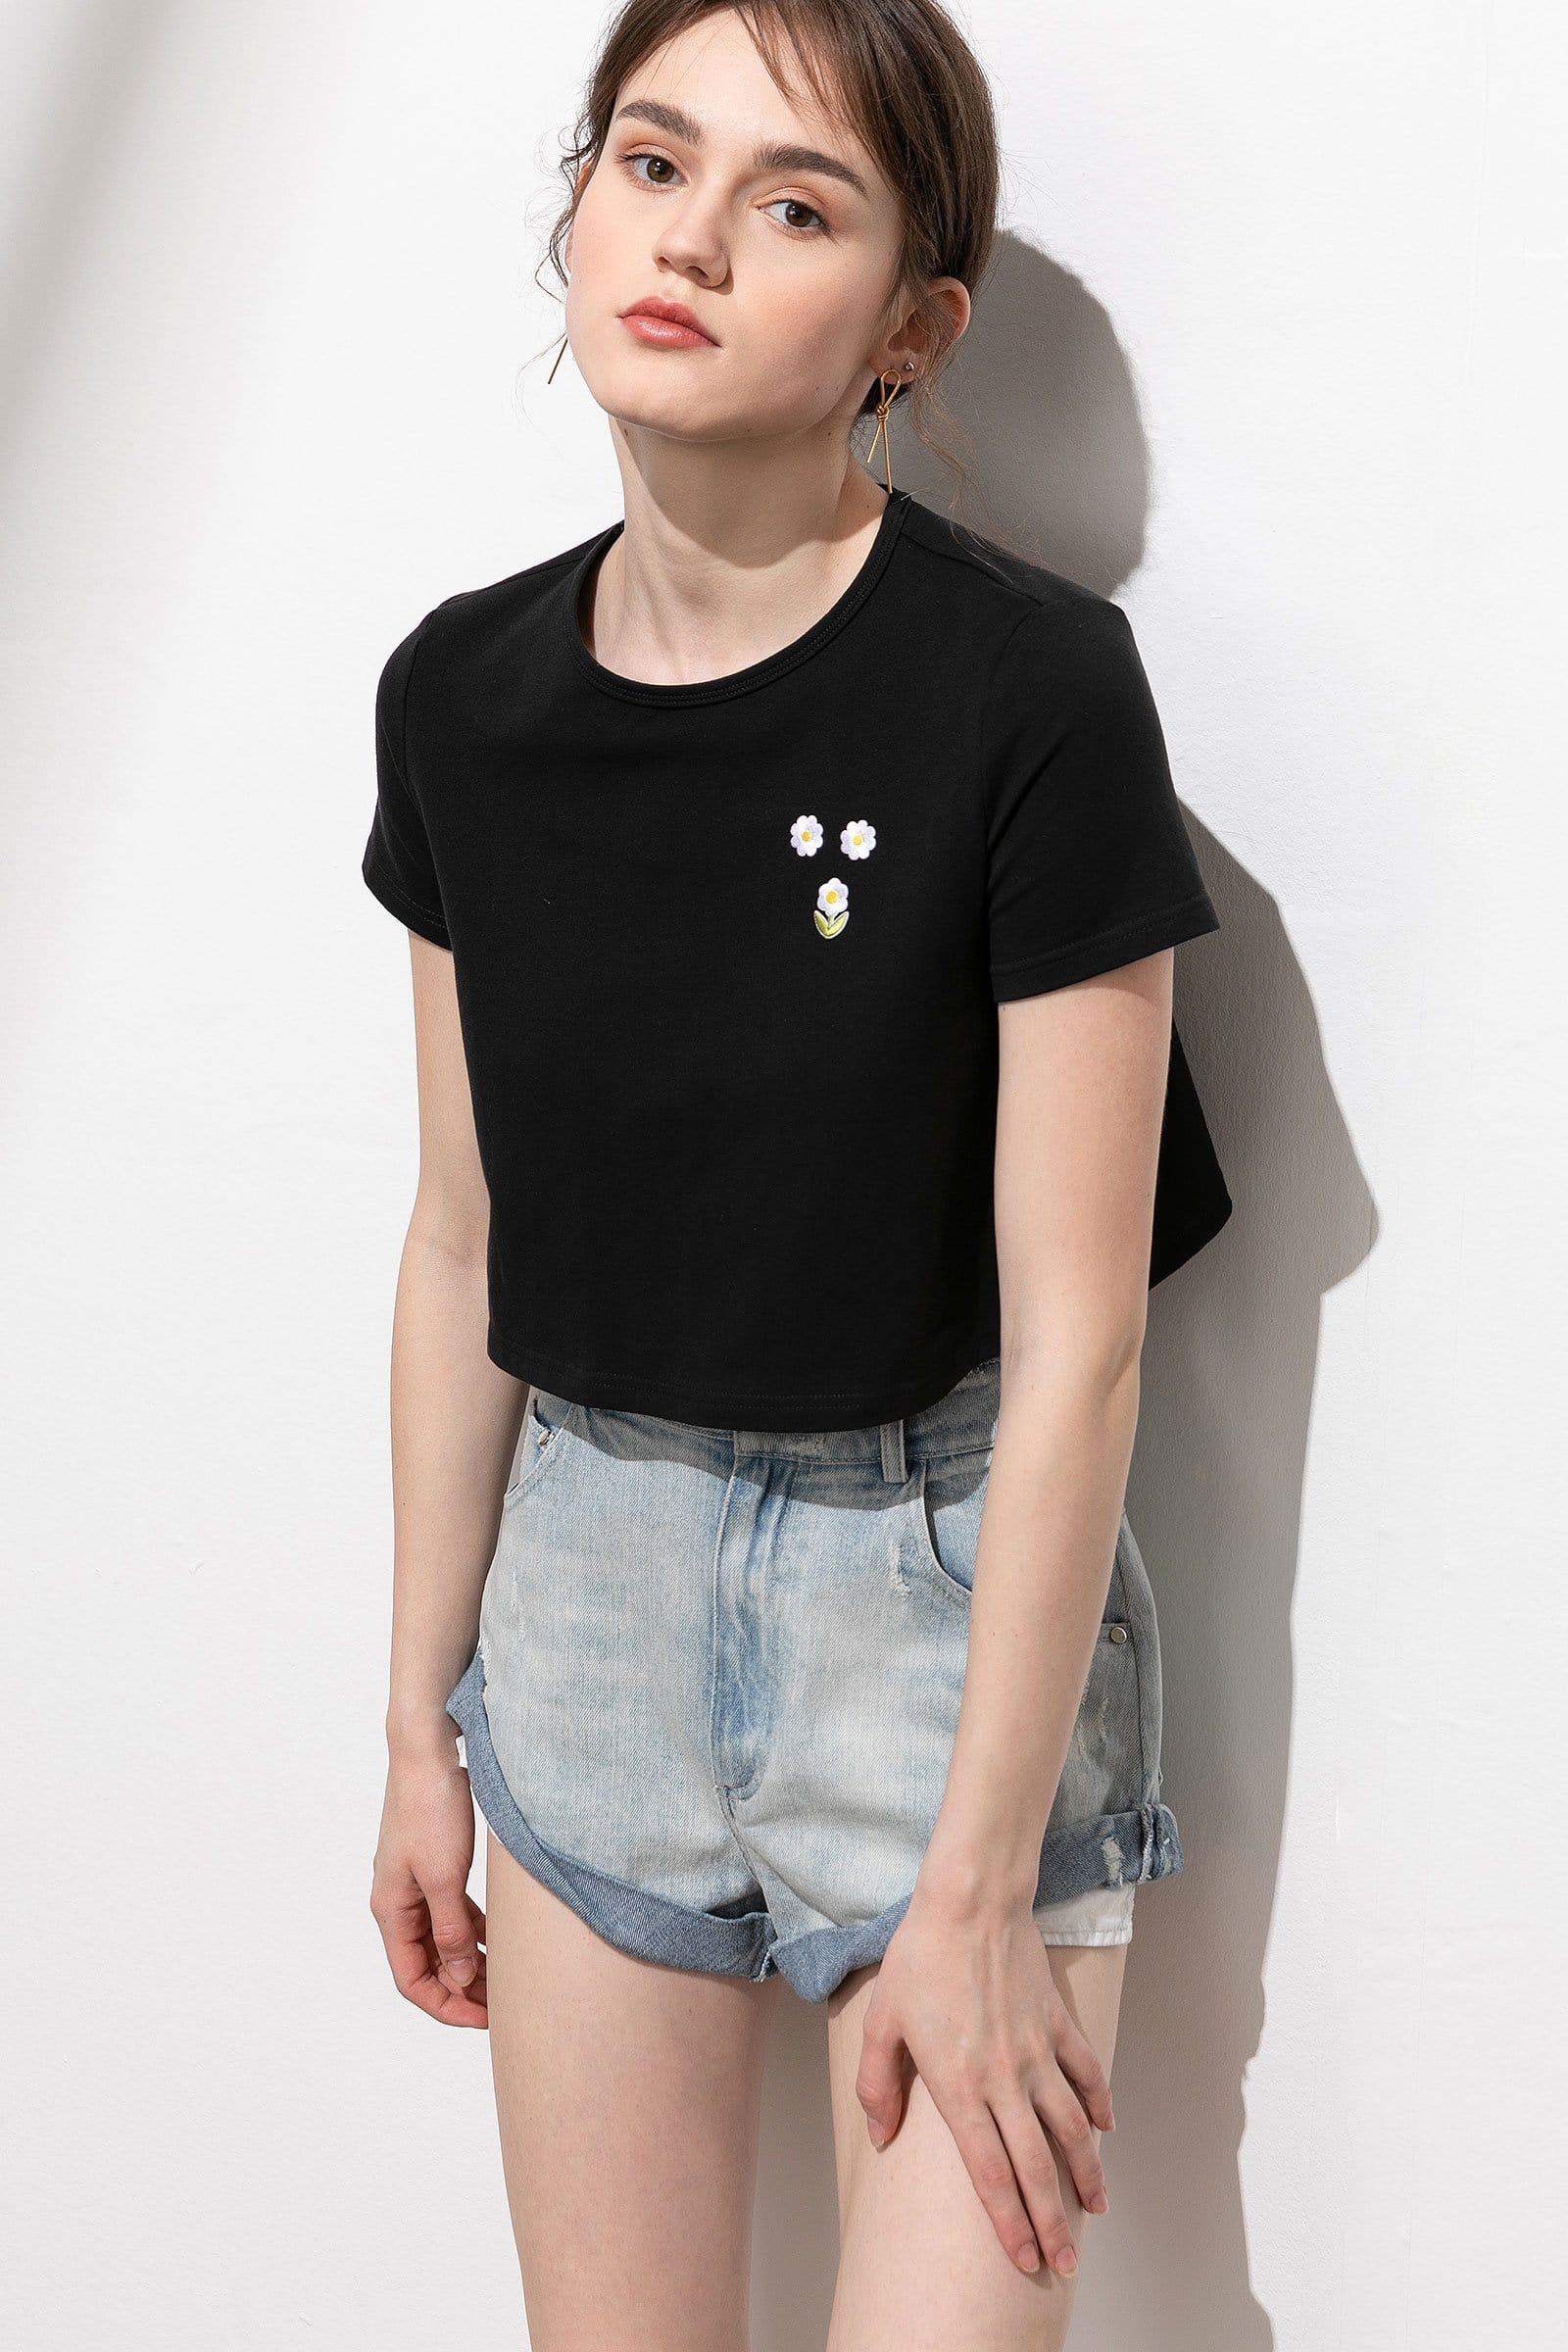 Petite Daisy Black Embroidered Crop Tee